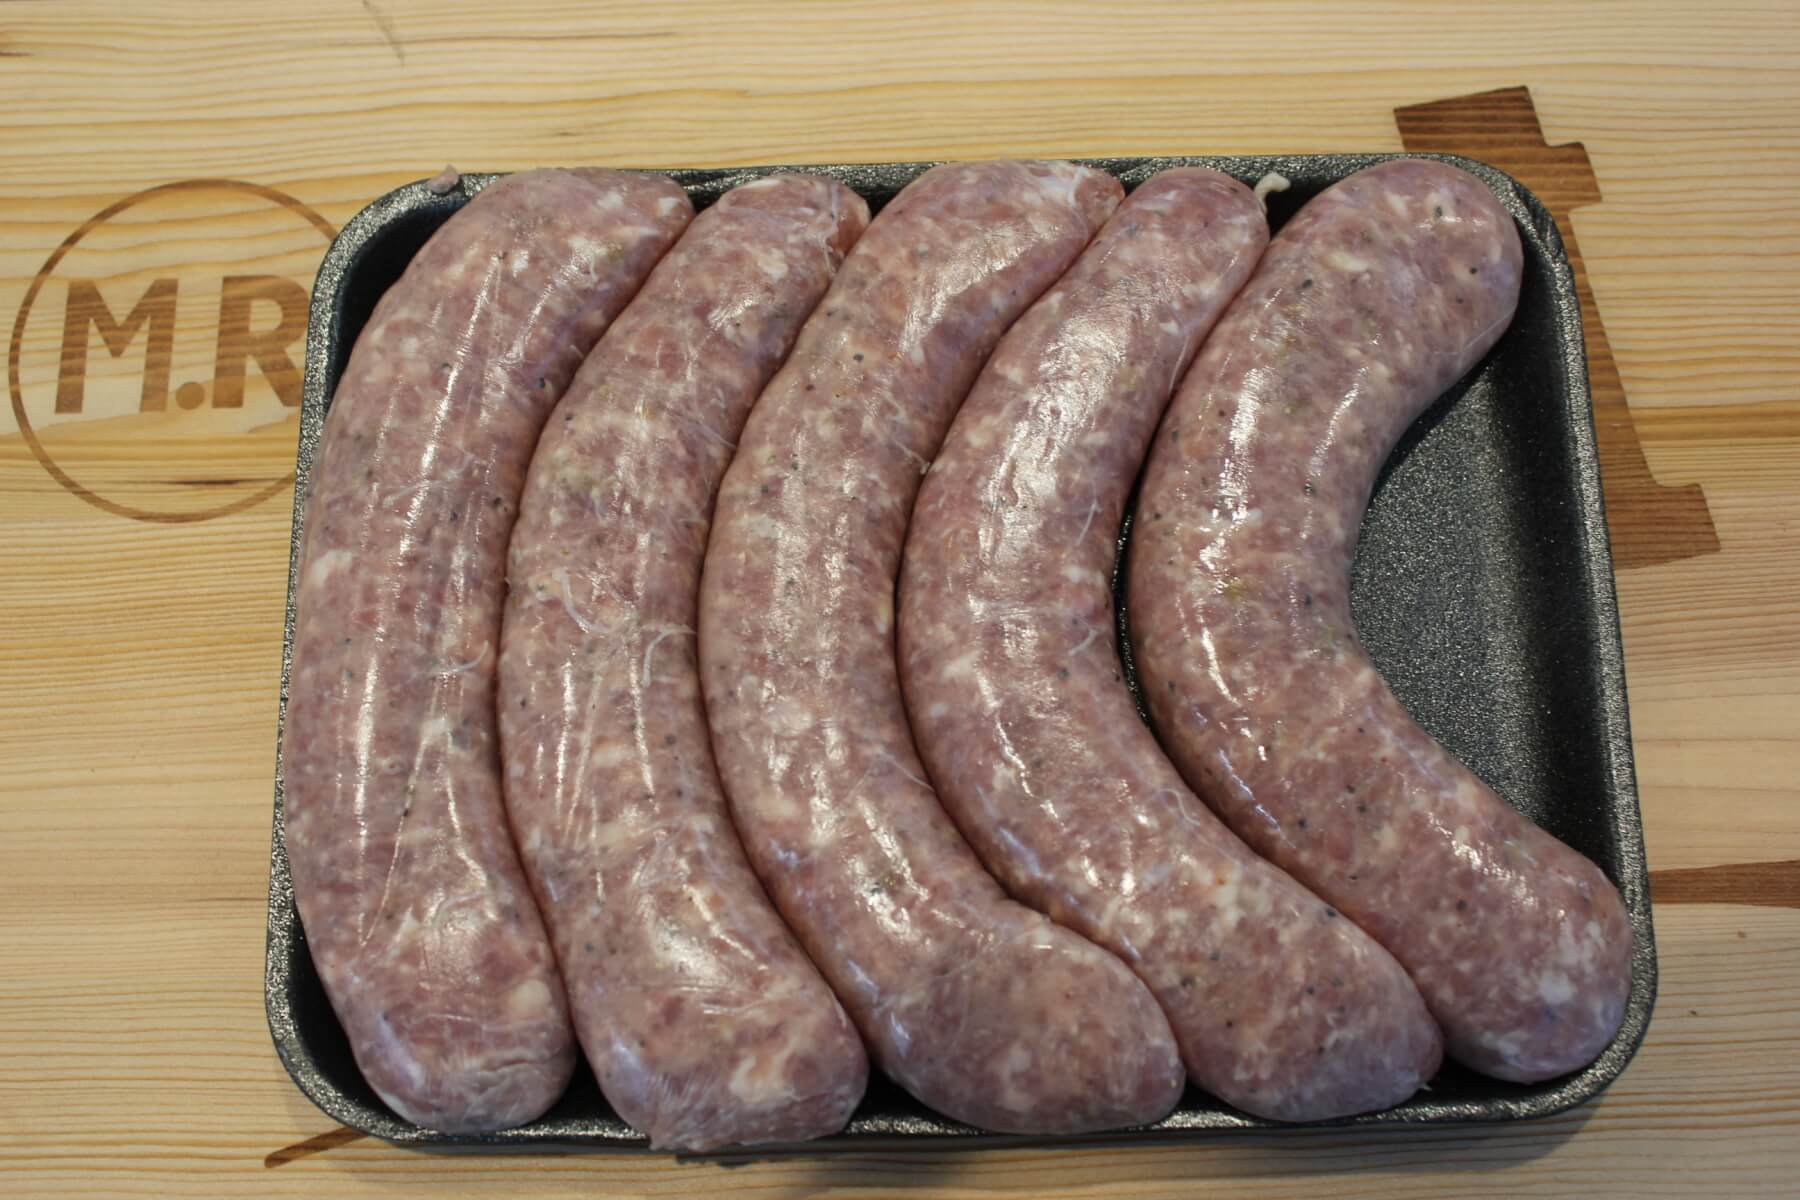 Marcos Own Famous Fennel Sausage